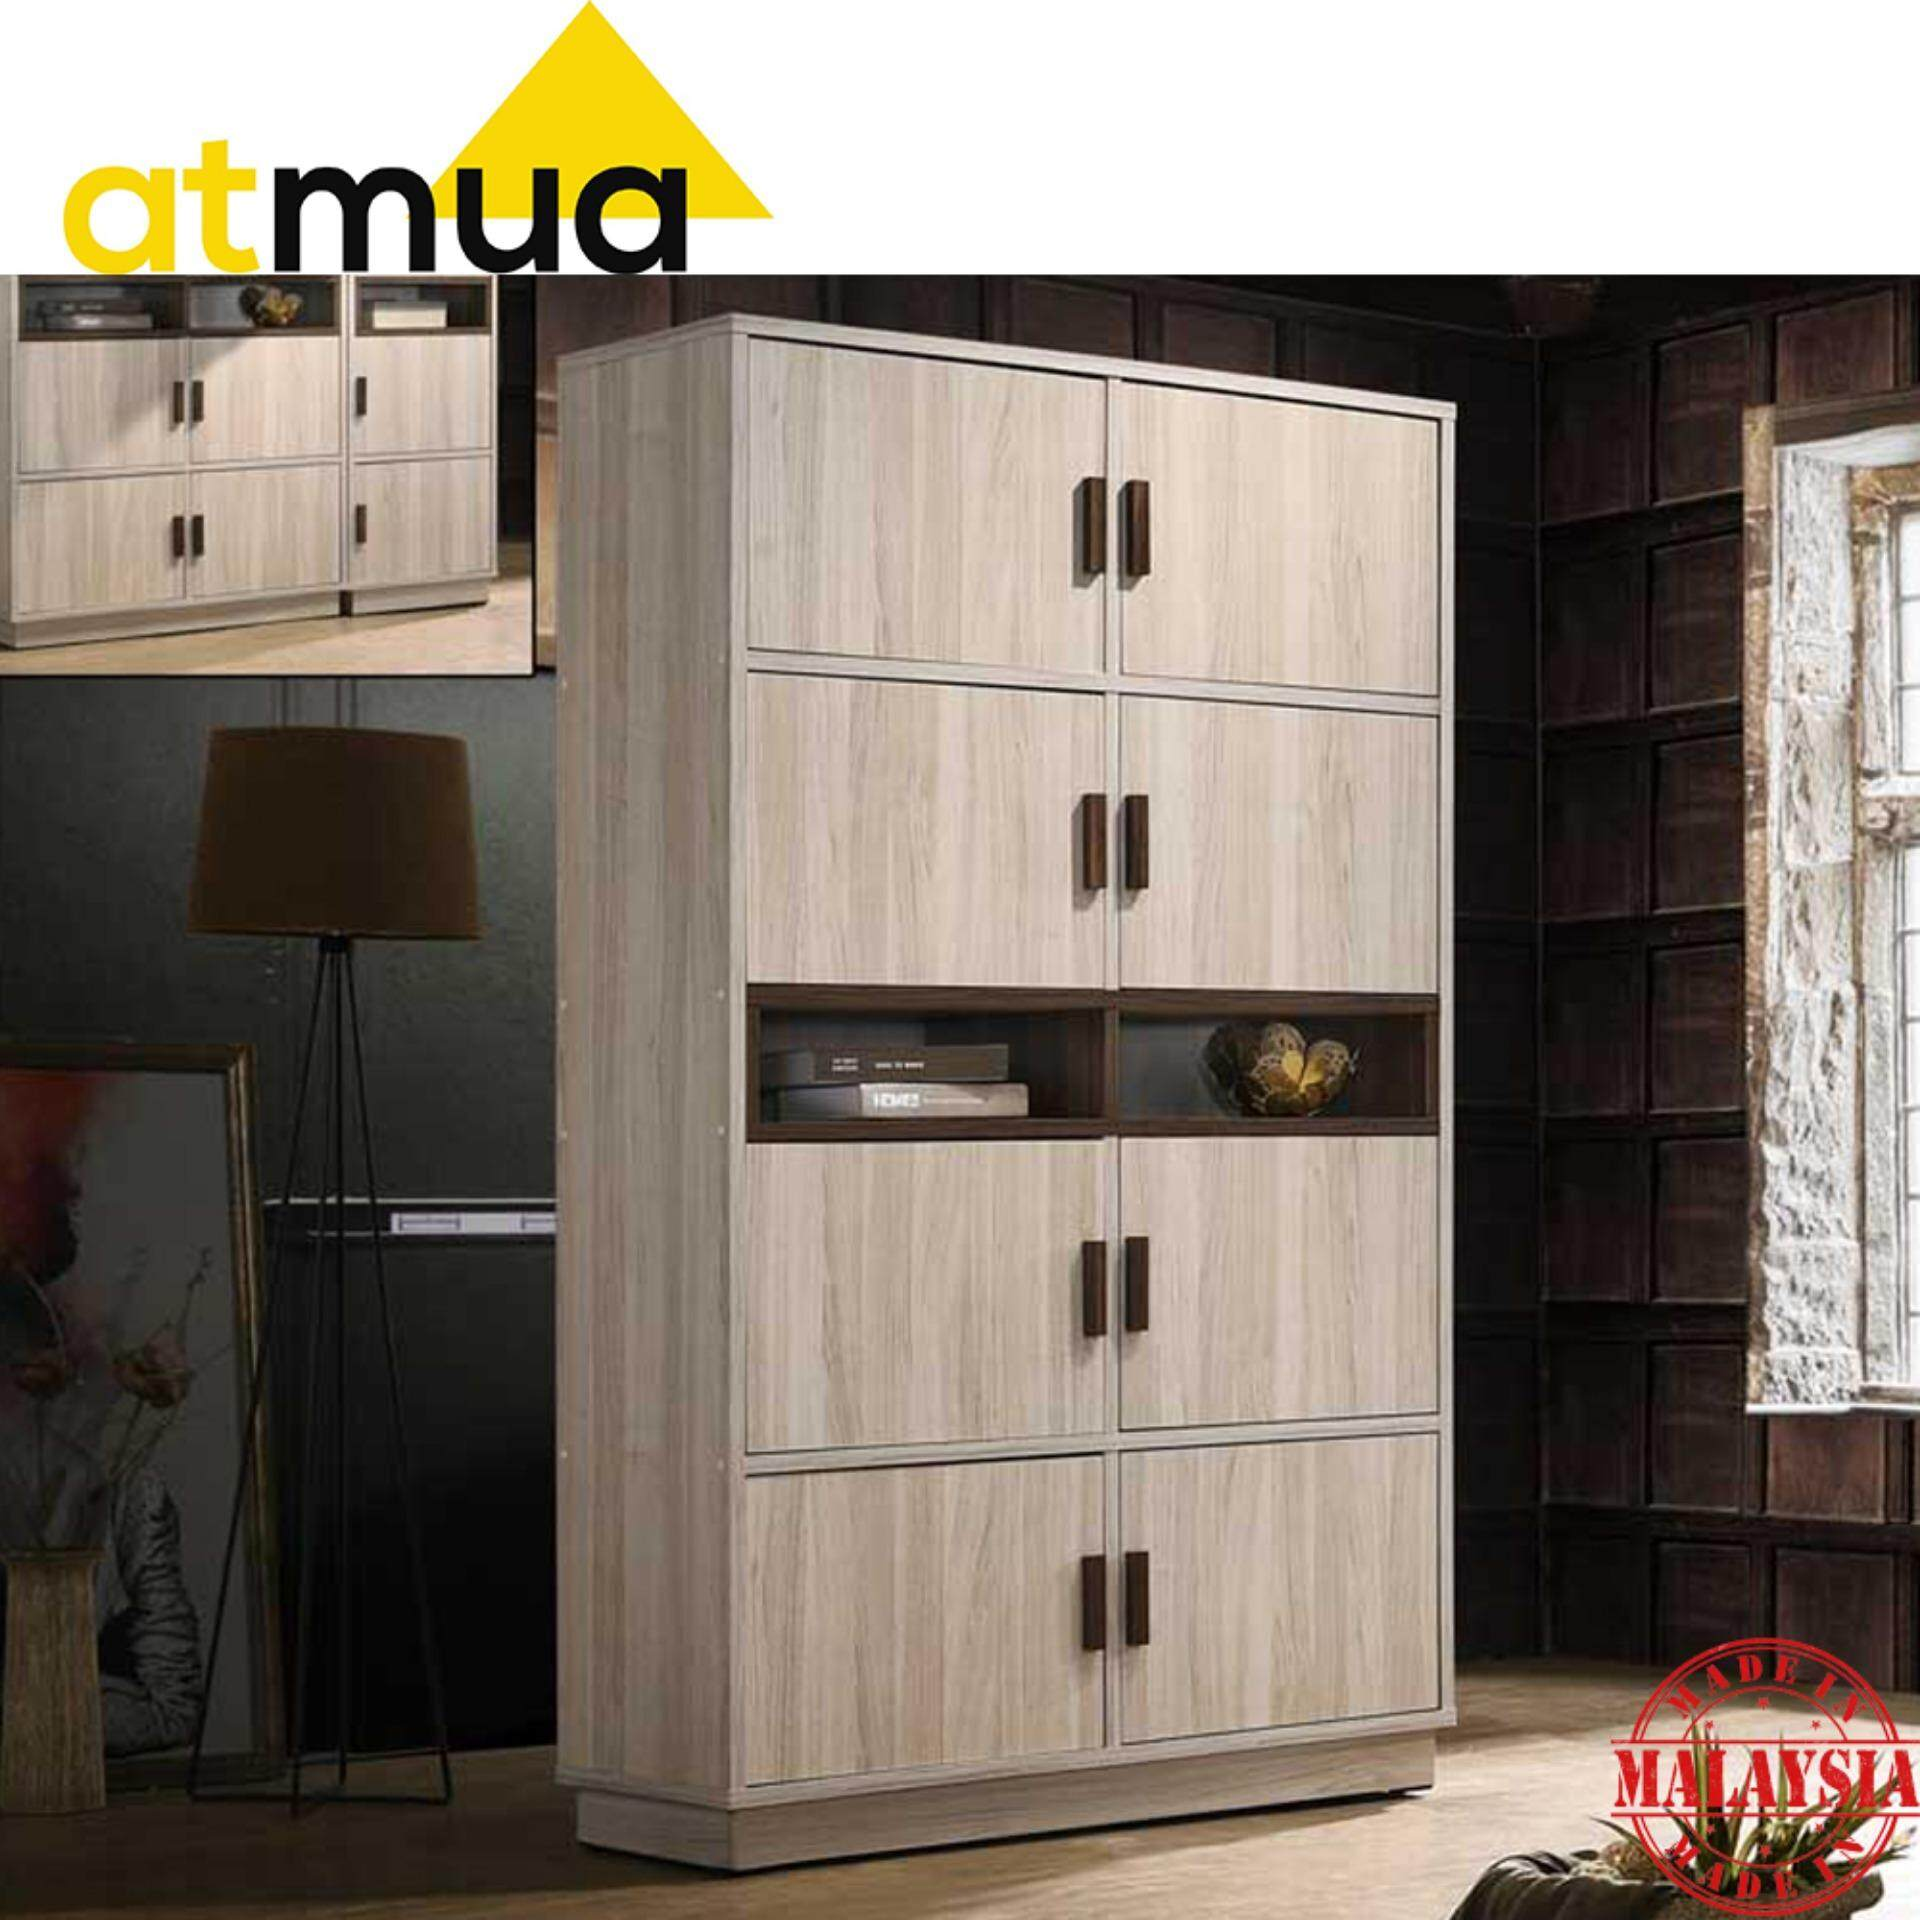 Atmua Tiso 8 Door Bookcase Storage Cabinet (Modern Design) [High Quality Hollow MDF Board]